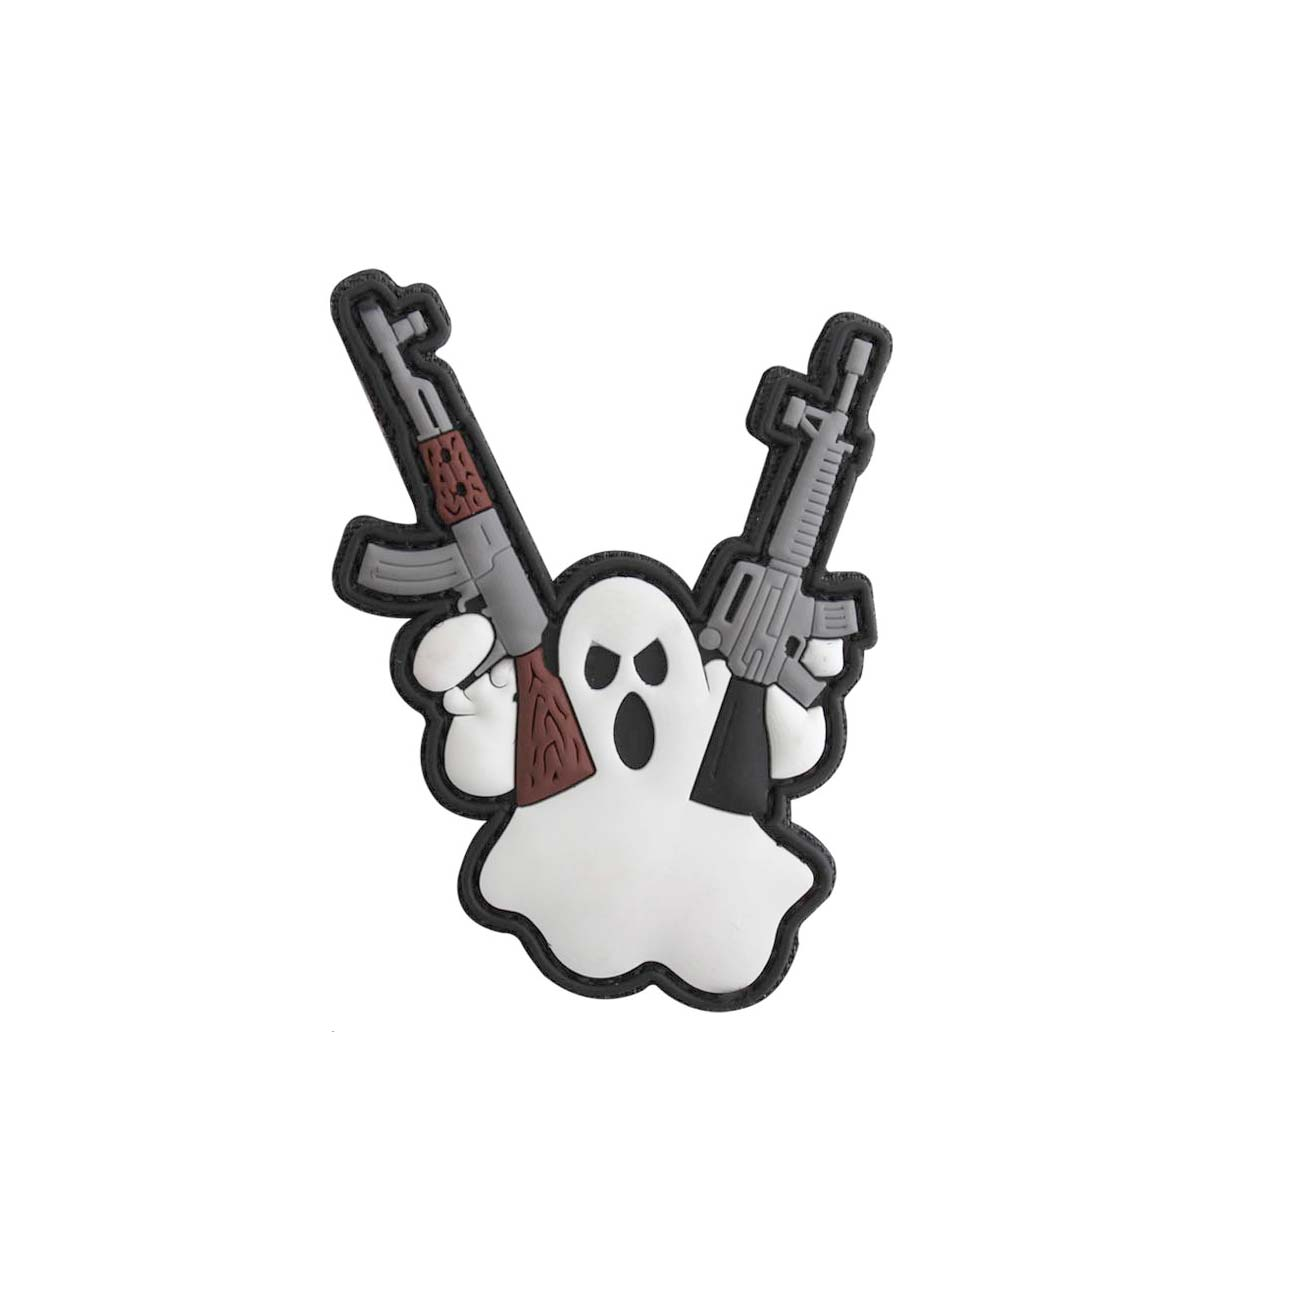 3D Rubber Patch Terror Ghost 0